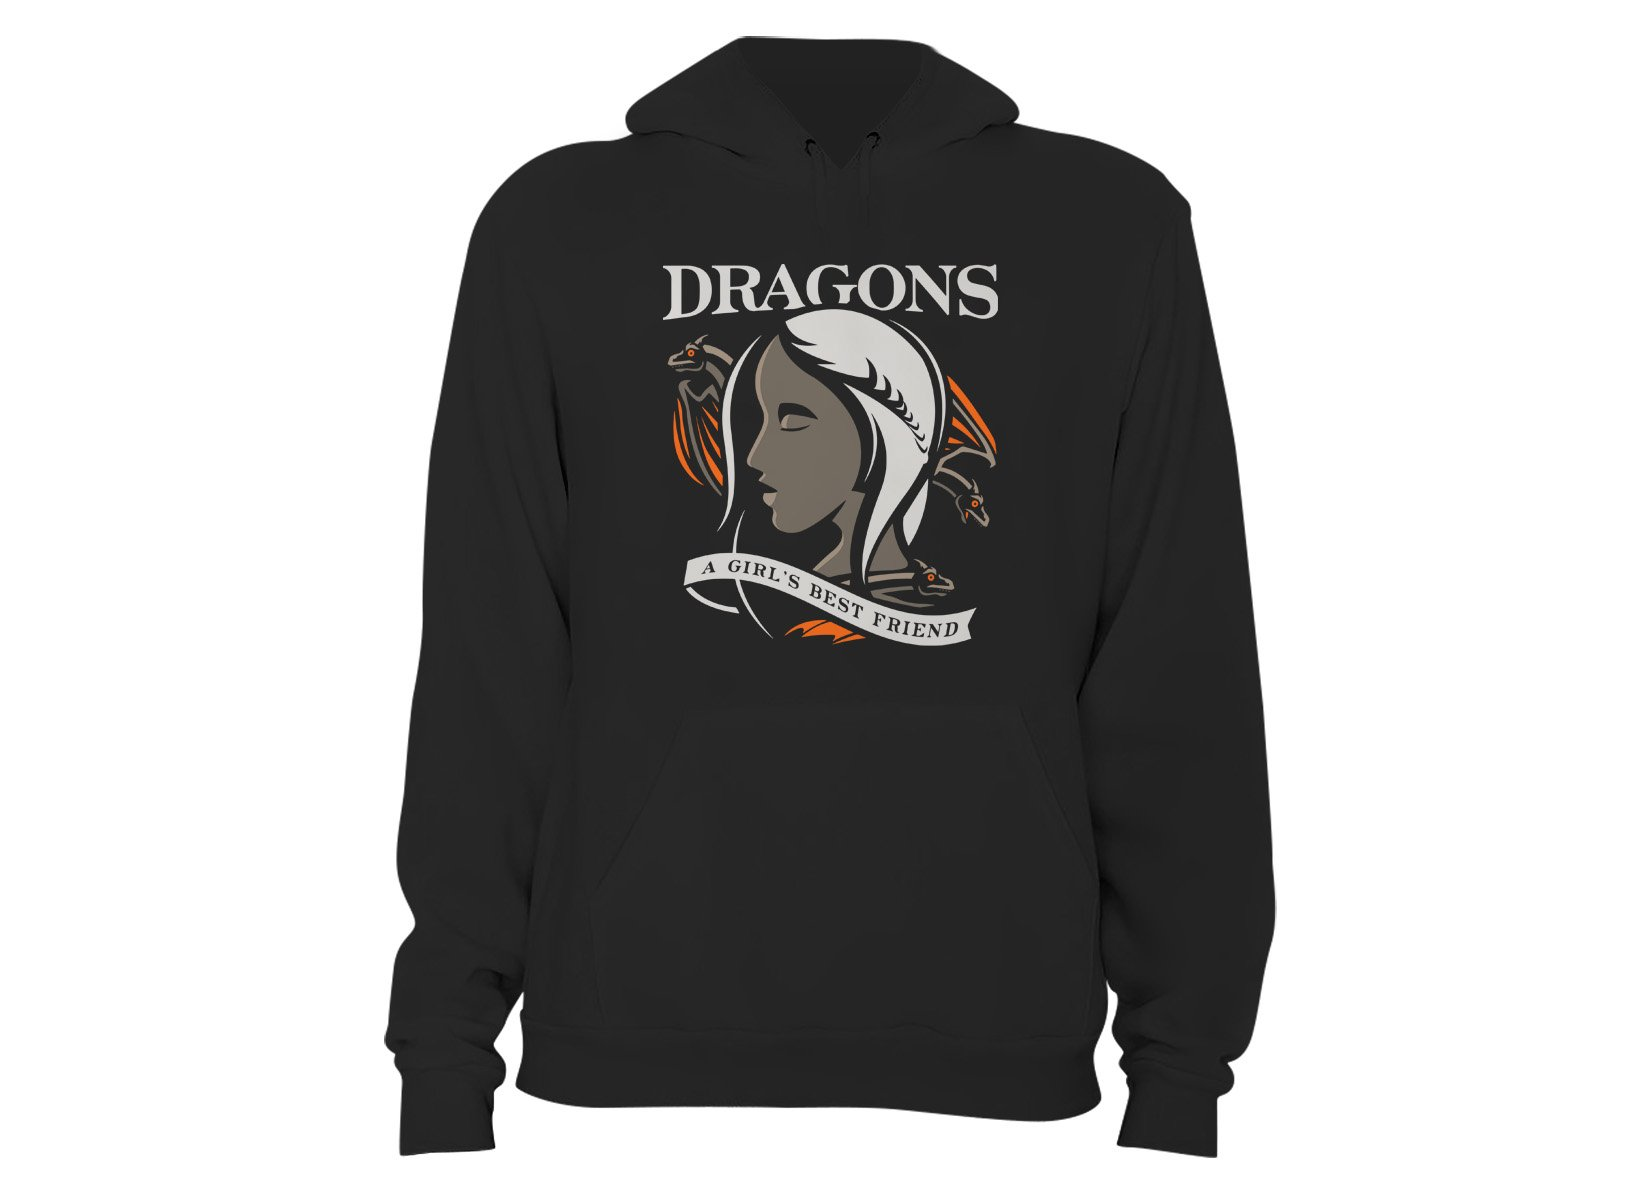 Dragons Are A Girl's Best Friend on Hoodie